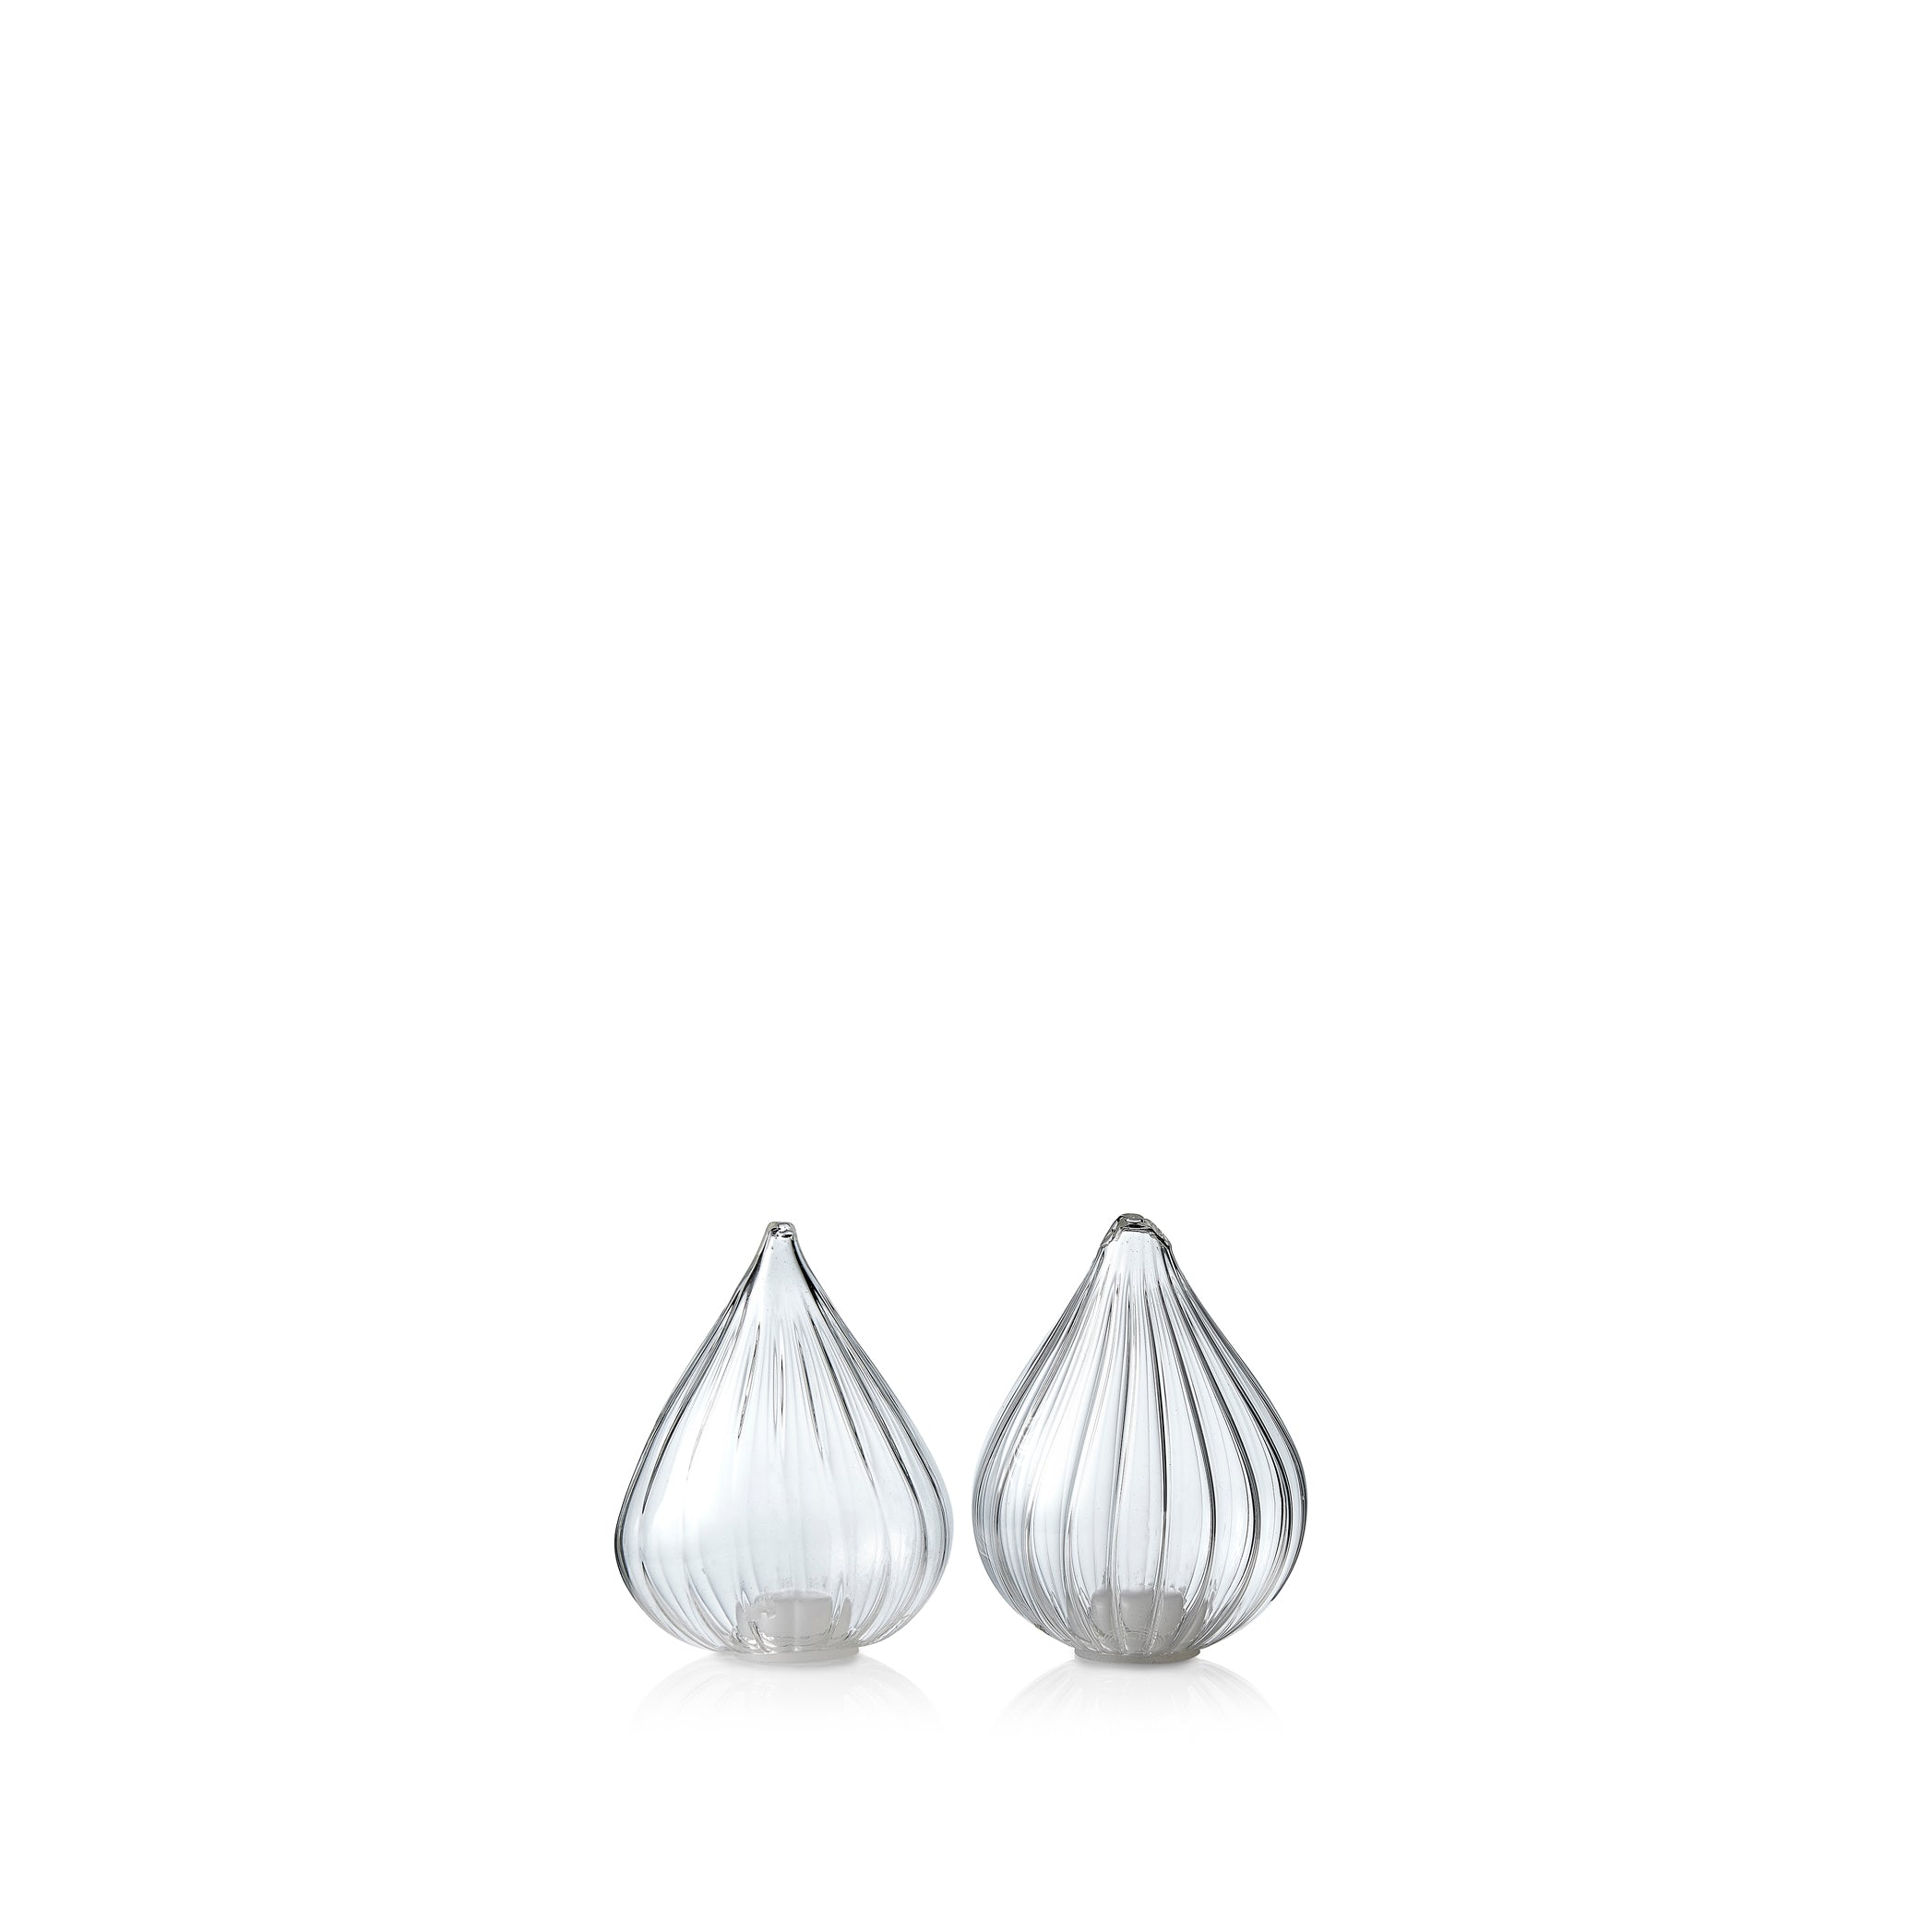 Handblown Glass Teardrop Salt & Pepper Shakers